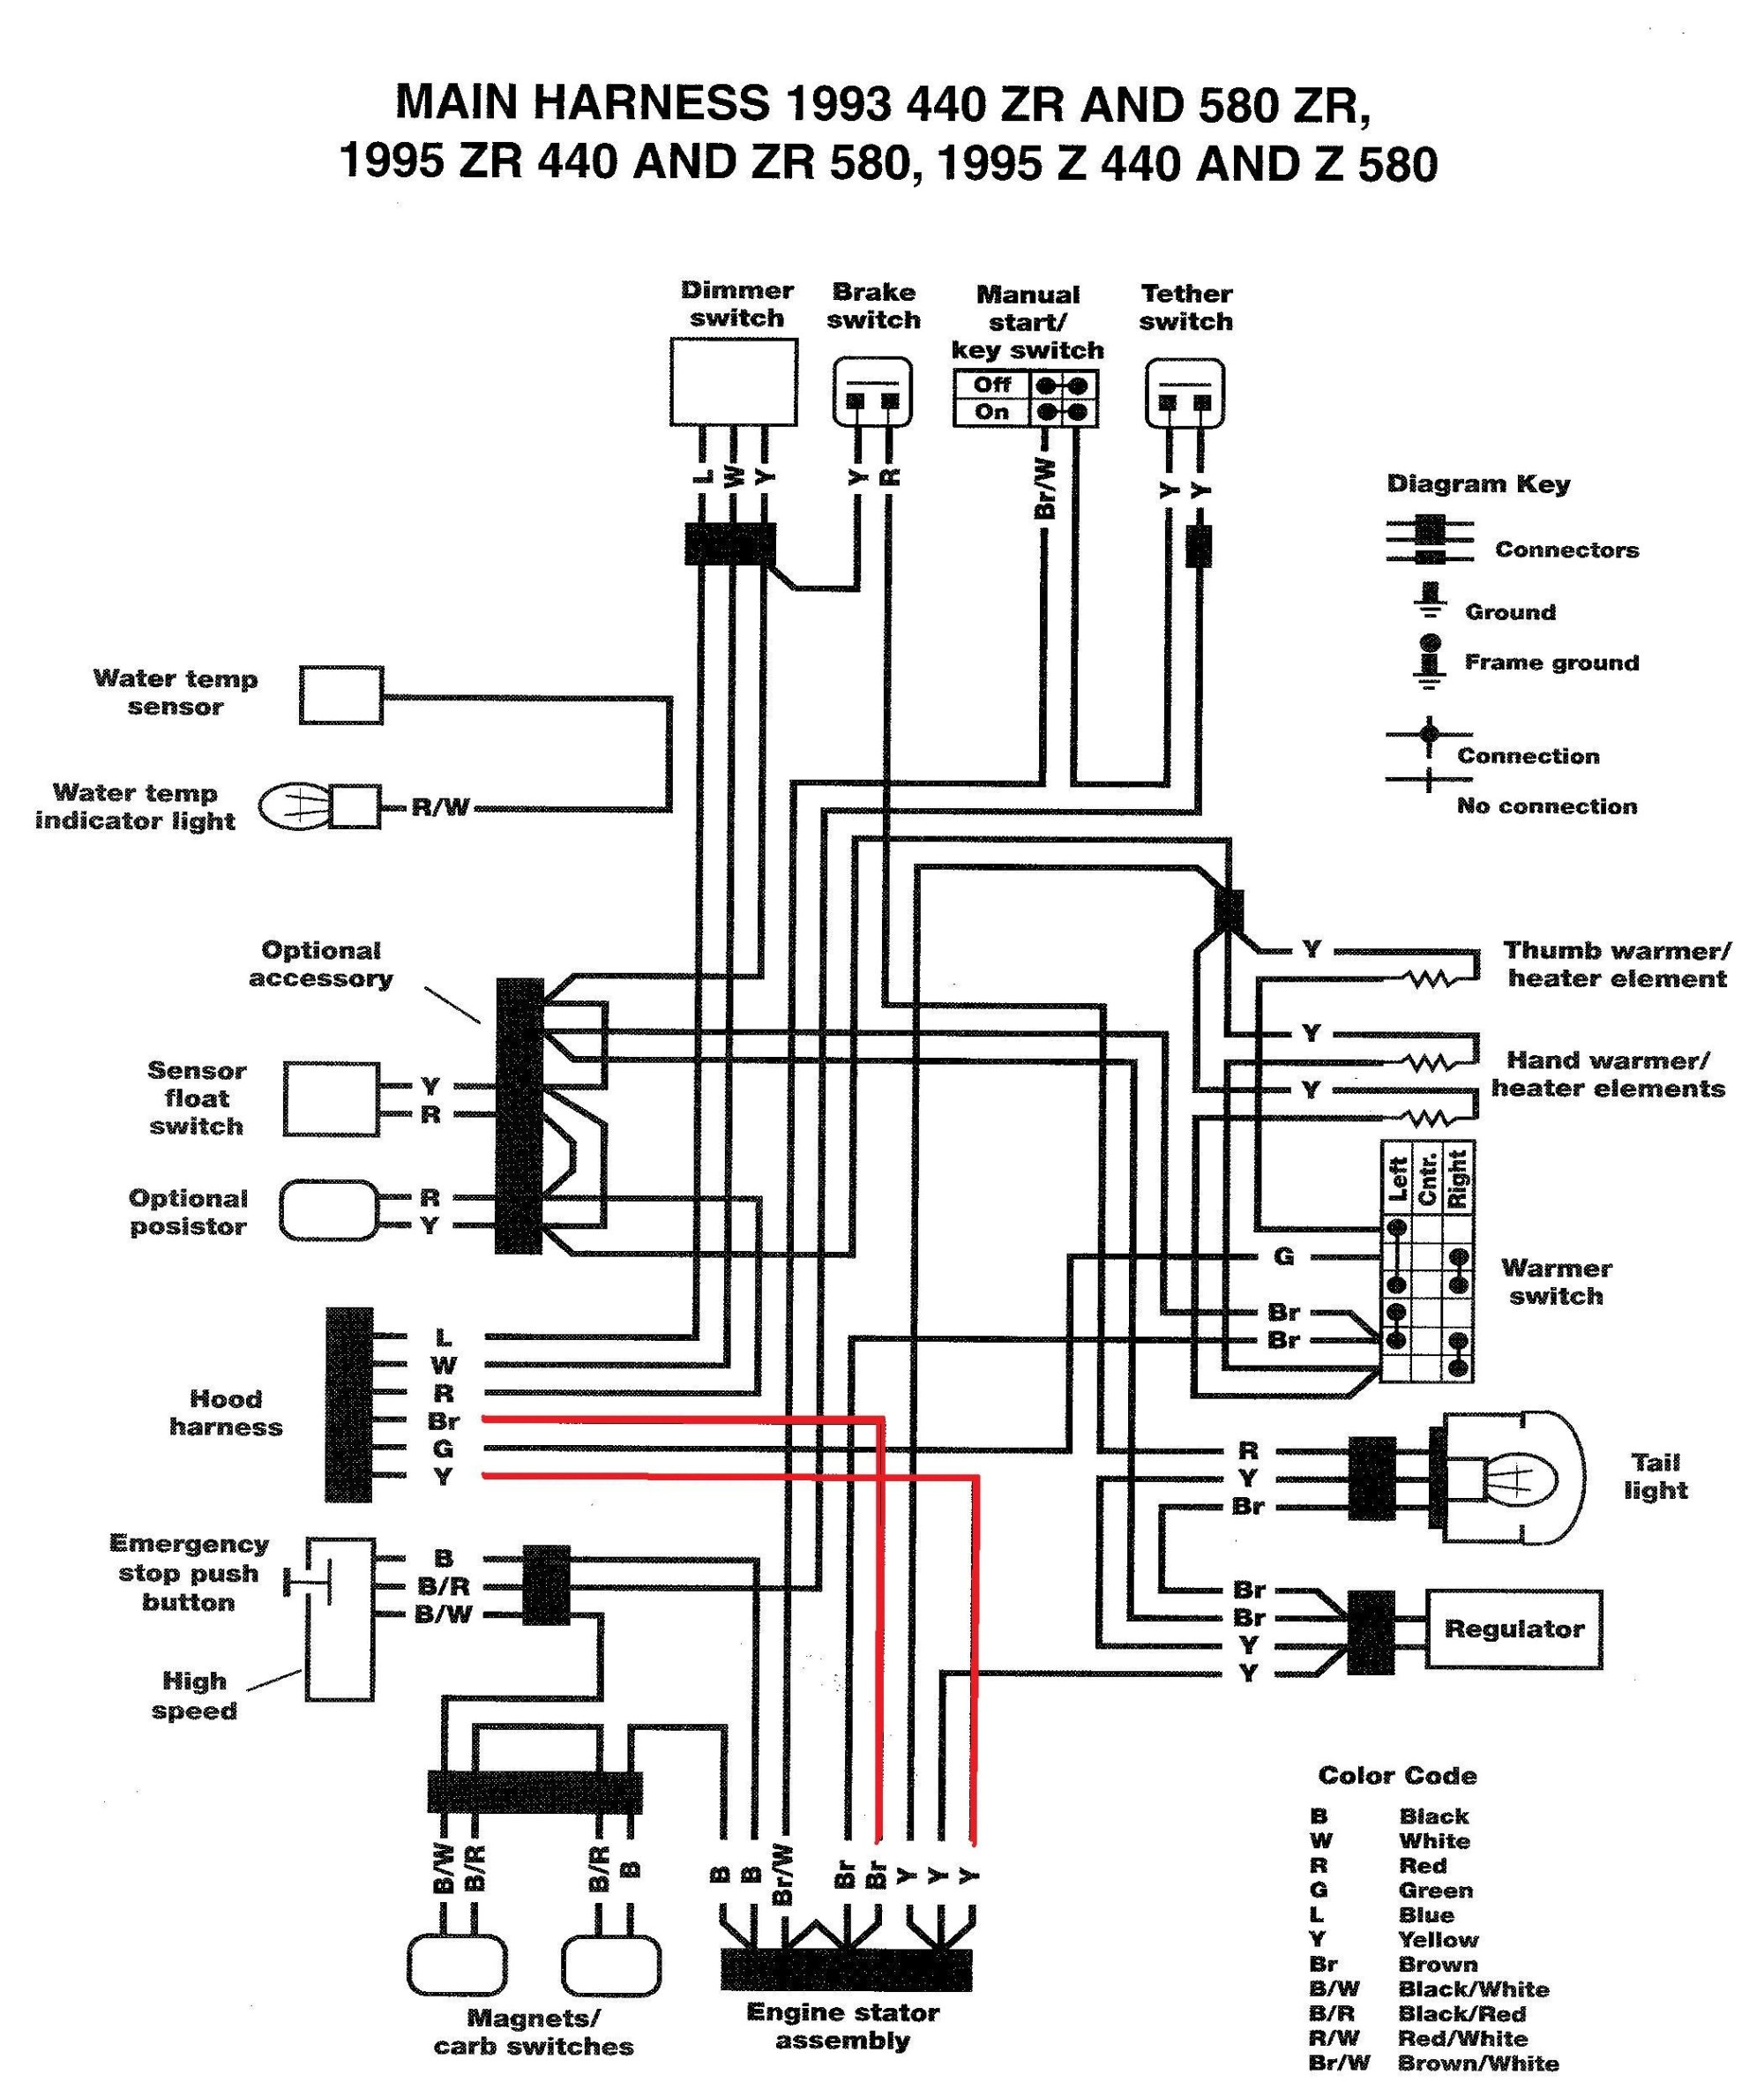 hight resolution of yamaha kodiak 400 wiring diagram wiring diagram showwiring diagram for yamaha kodiak 400 atv data diagram